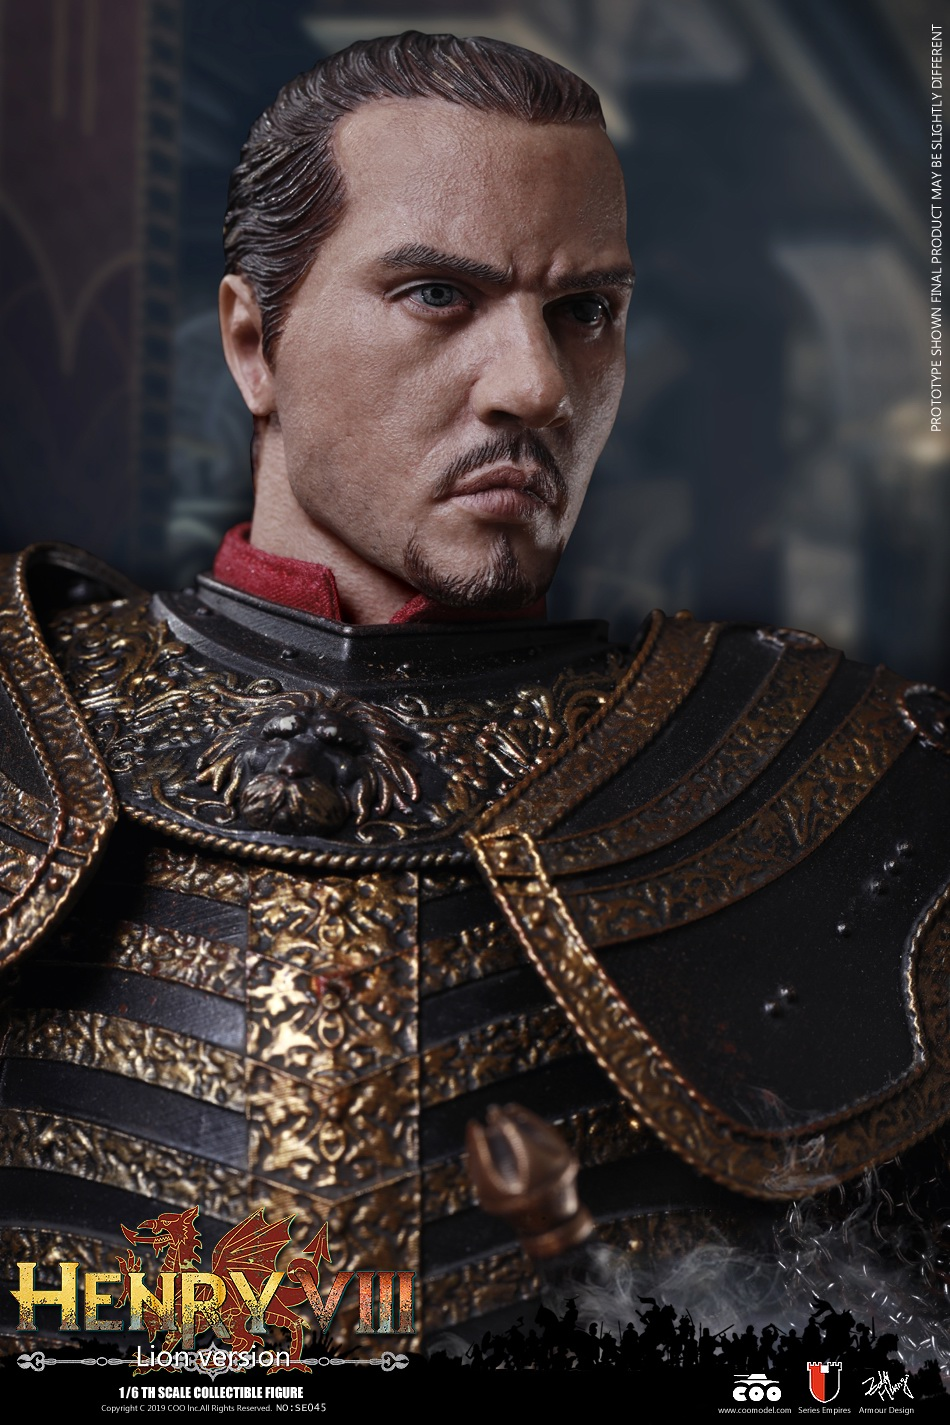 CooModel - NEW PRODUCT: COOMODEL: 1 / 6 alloy die-casting empire series - Henry VIII Lions version of the red dragon version of the Tudor version of the Wolf Hall scene 00315110